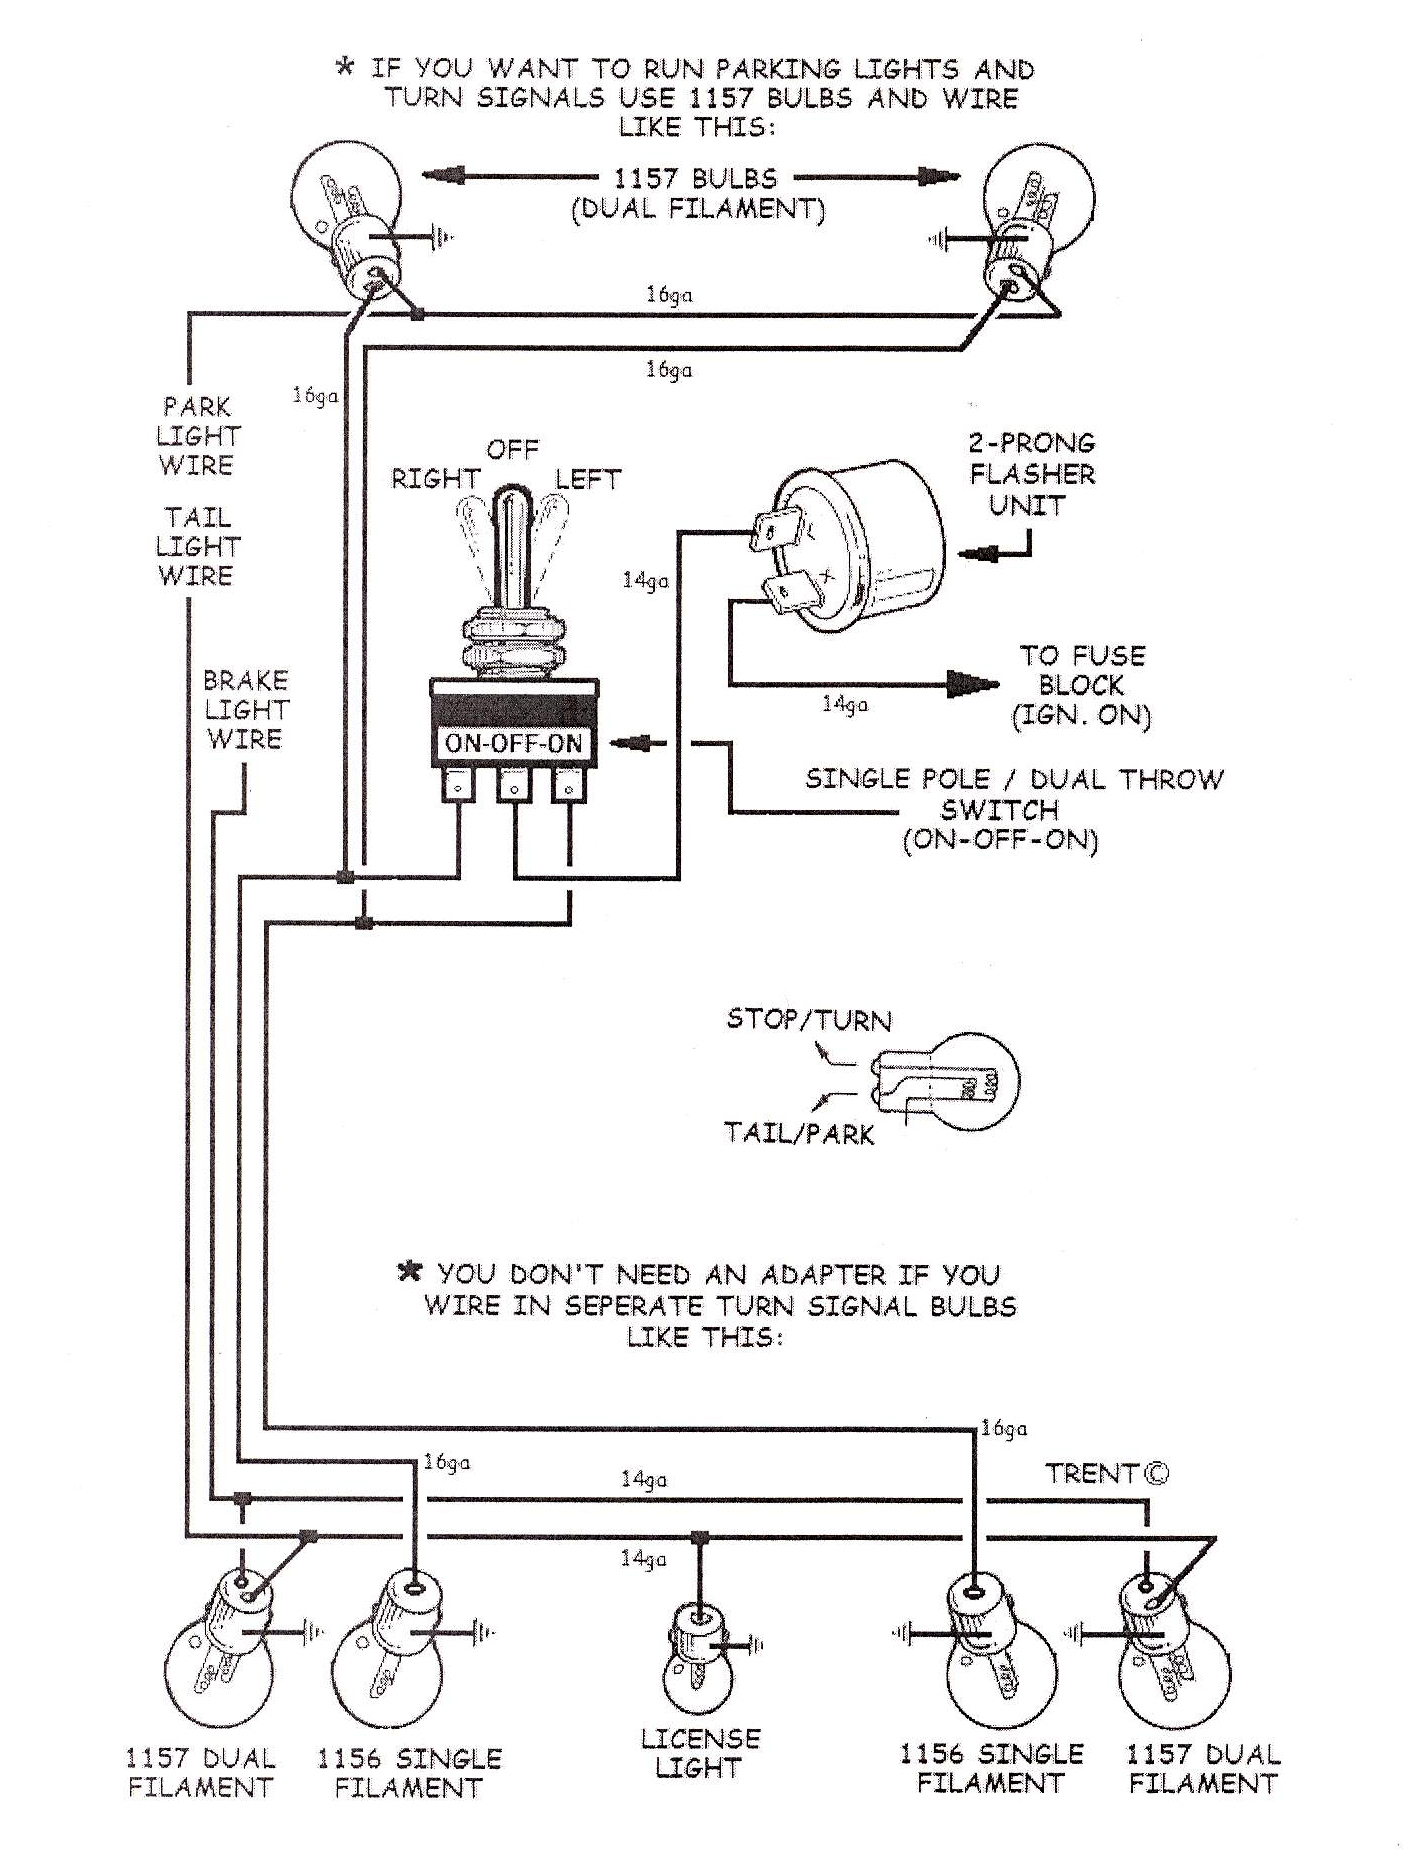 turnsignalwiringdiagram tech tips 1970 gm steering column wiring diagram at metegol.co